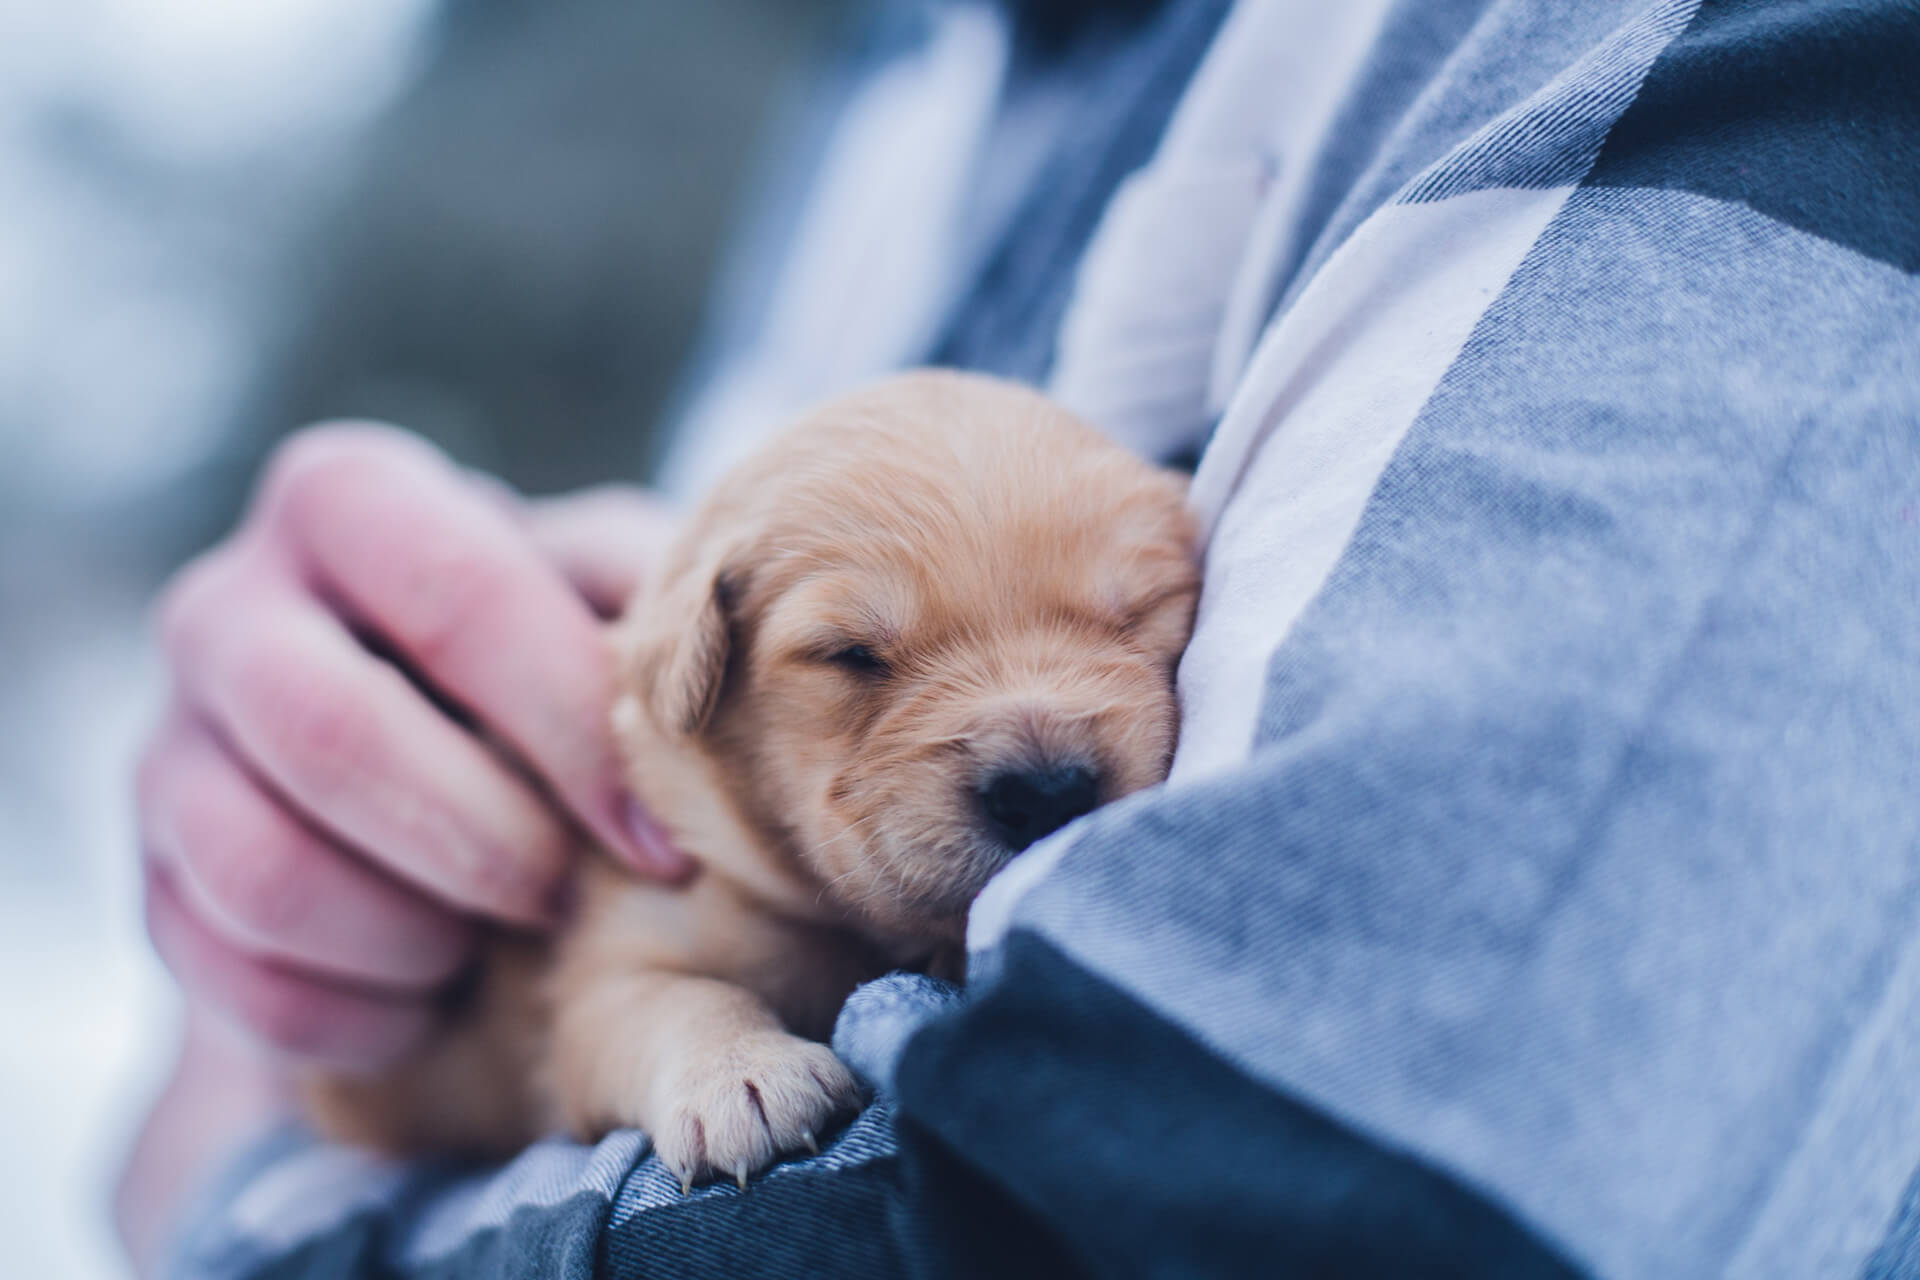 Puppies May Protect Babies From Allergies and Obesity